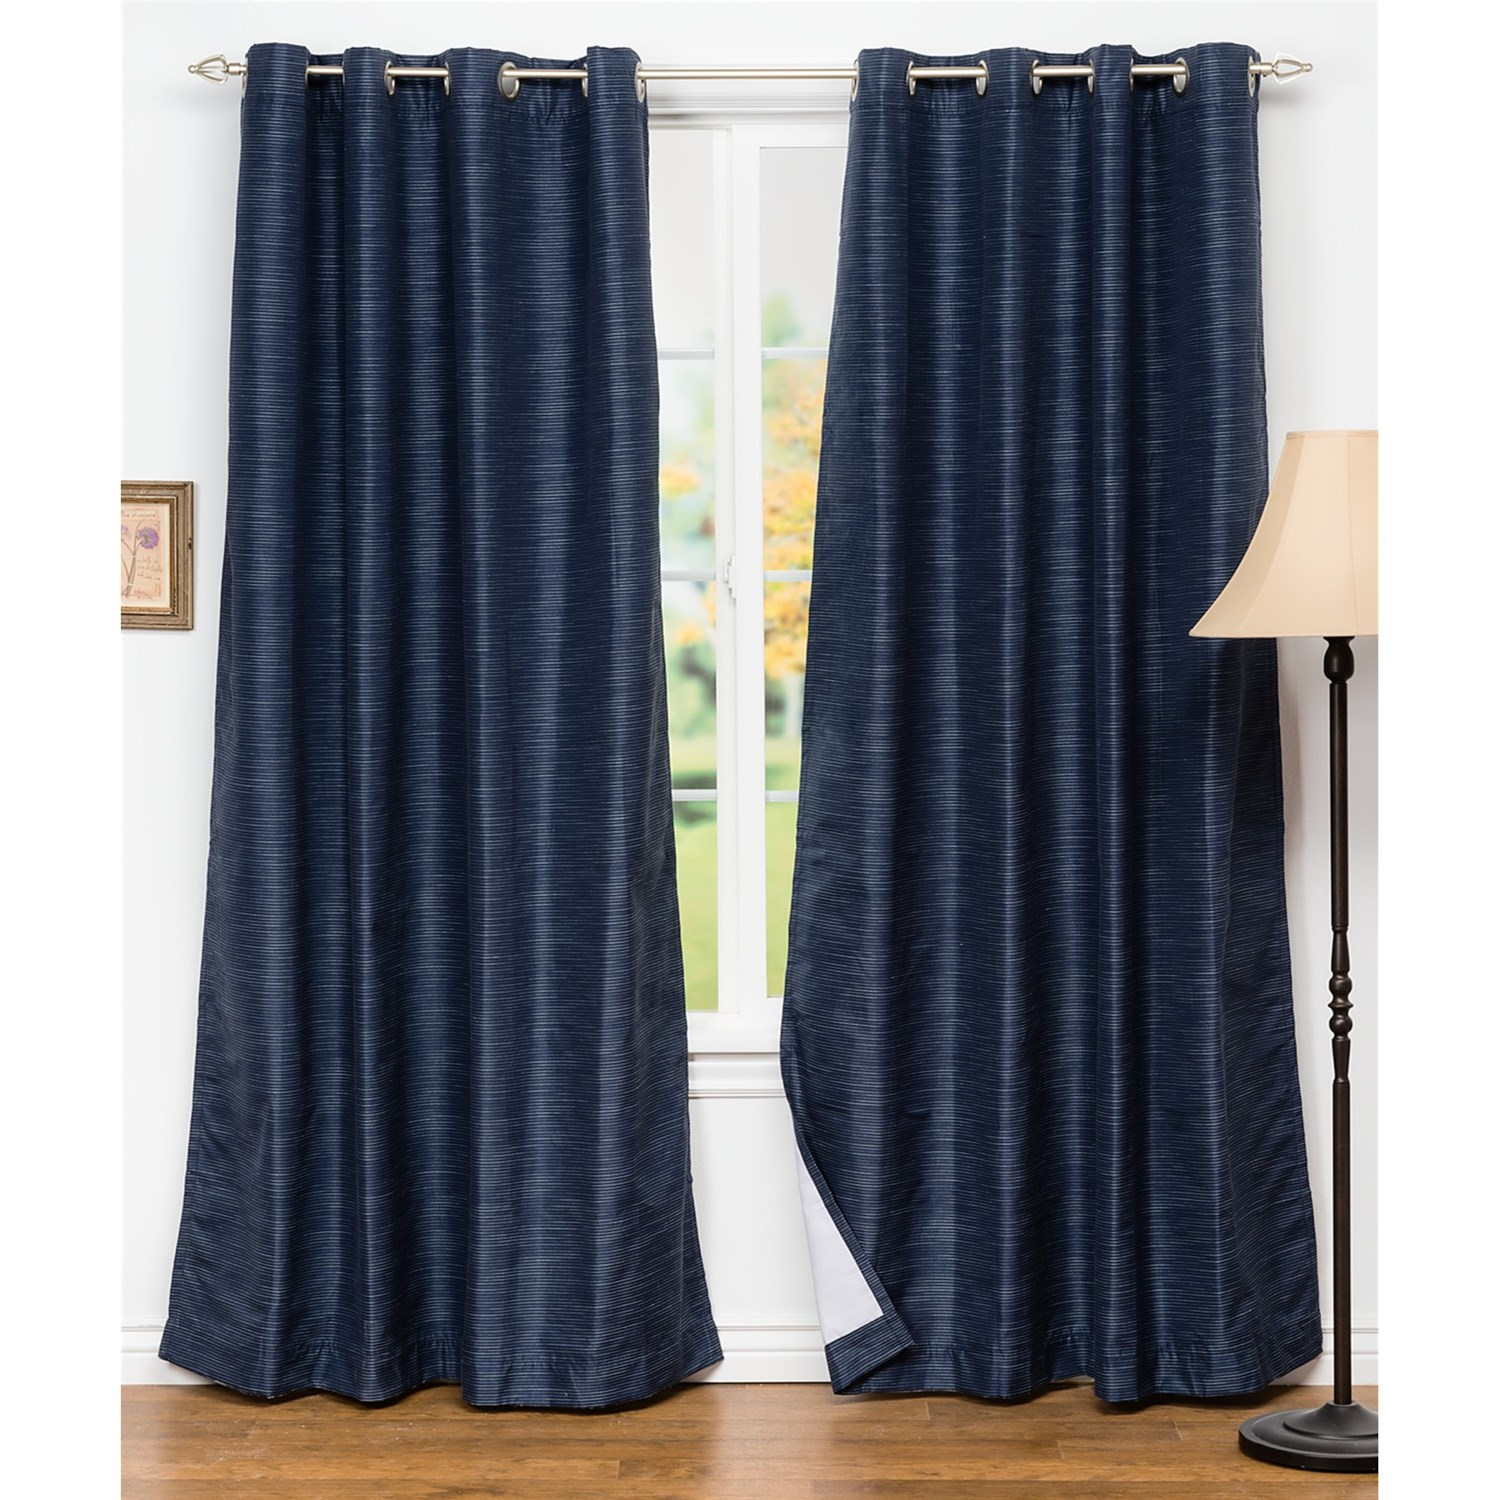 United Curtain Co Brighton Blackout Curtains 108x63 Grommet Top 8251h Save 52